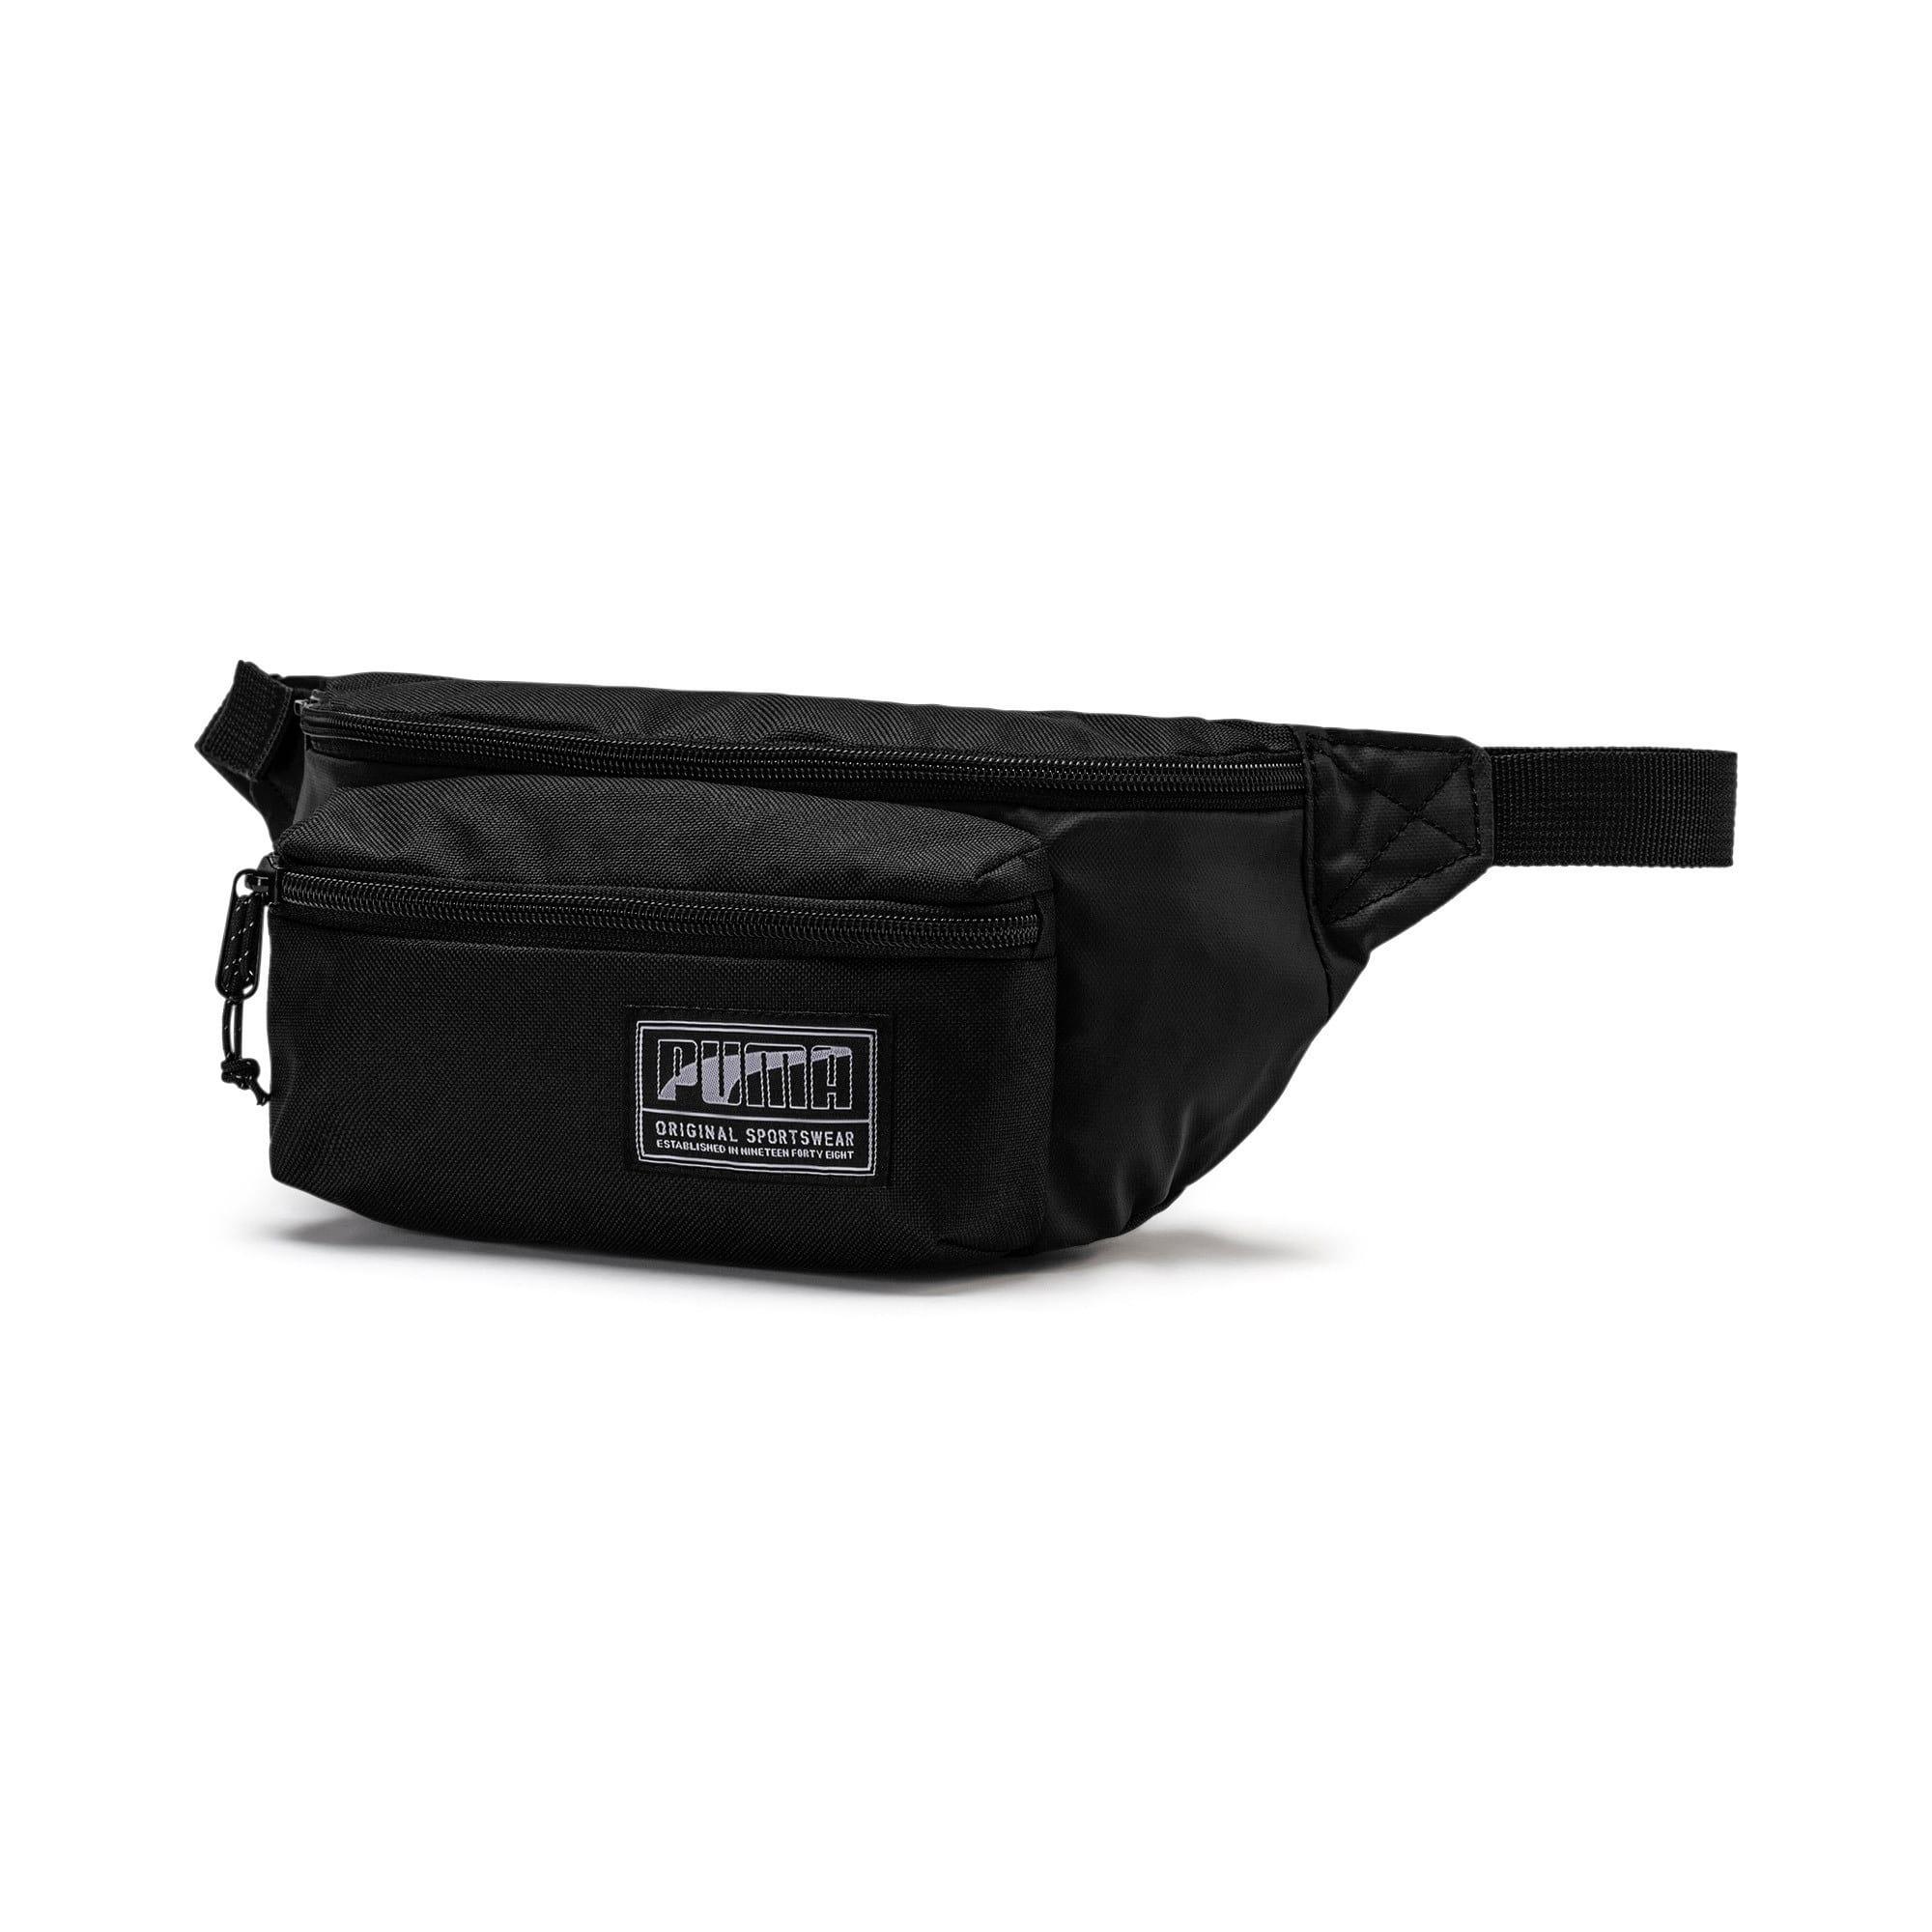 Thumbnail 1 of PUMA Academy Waist Bag, Puma Black, medium